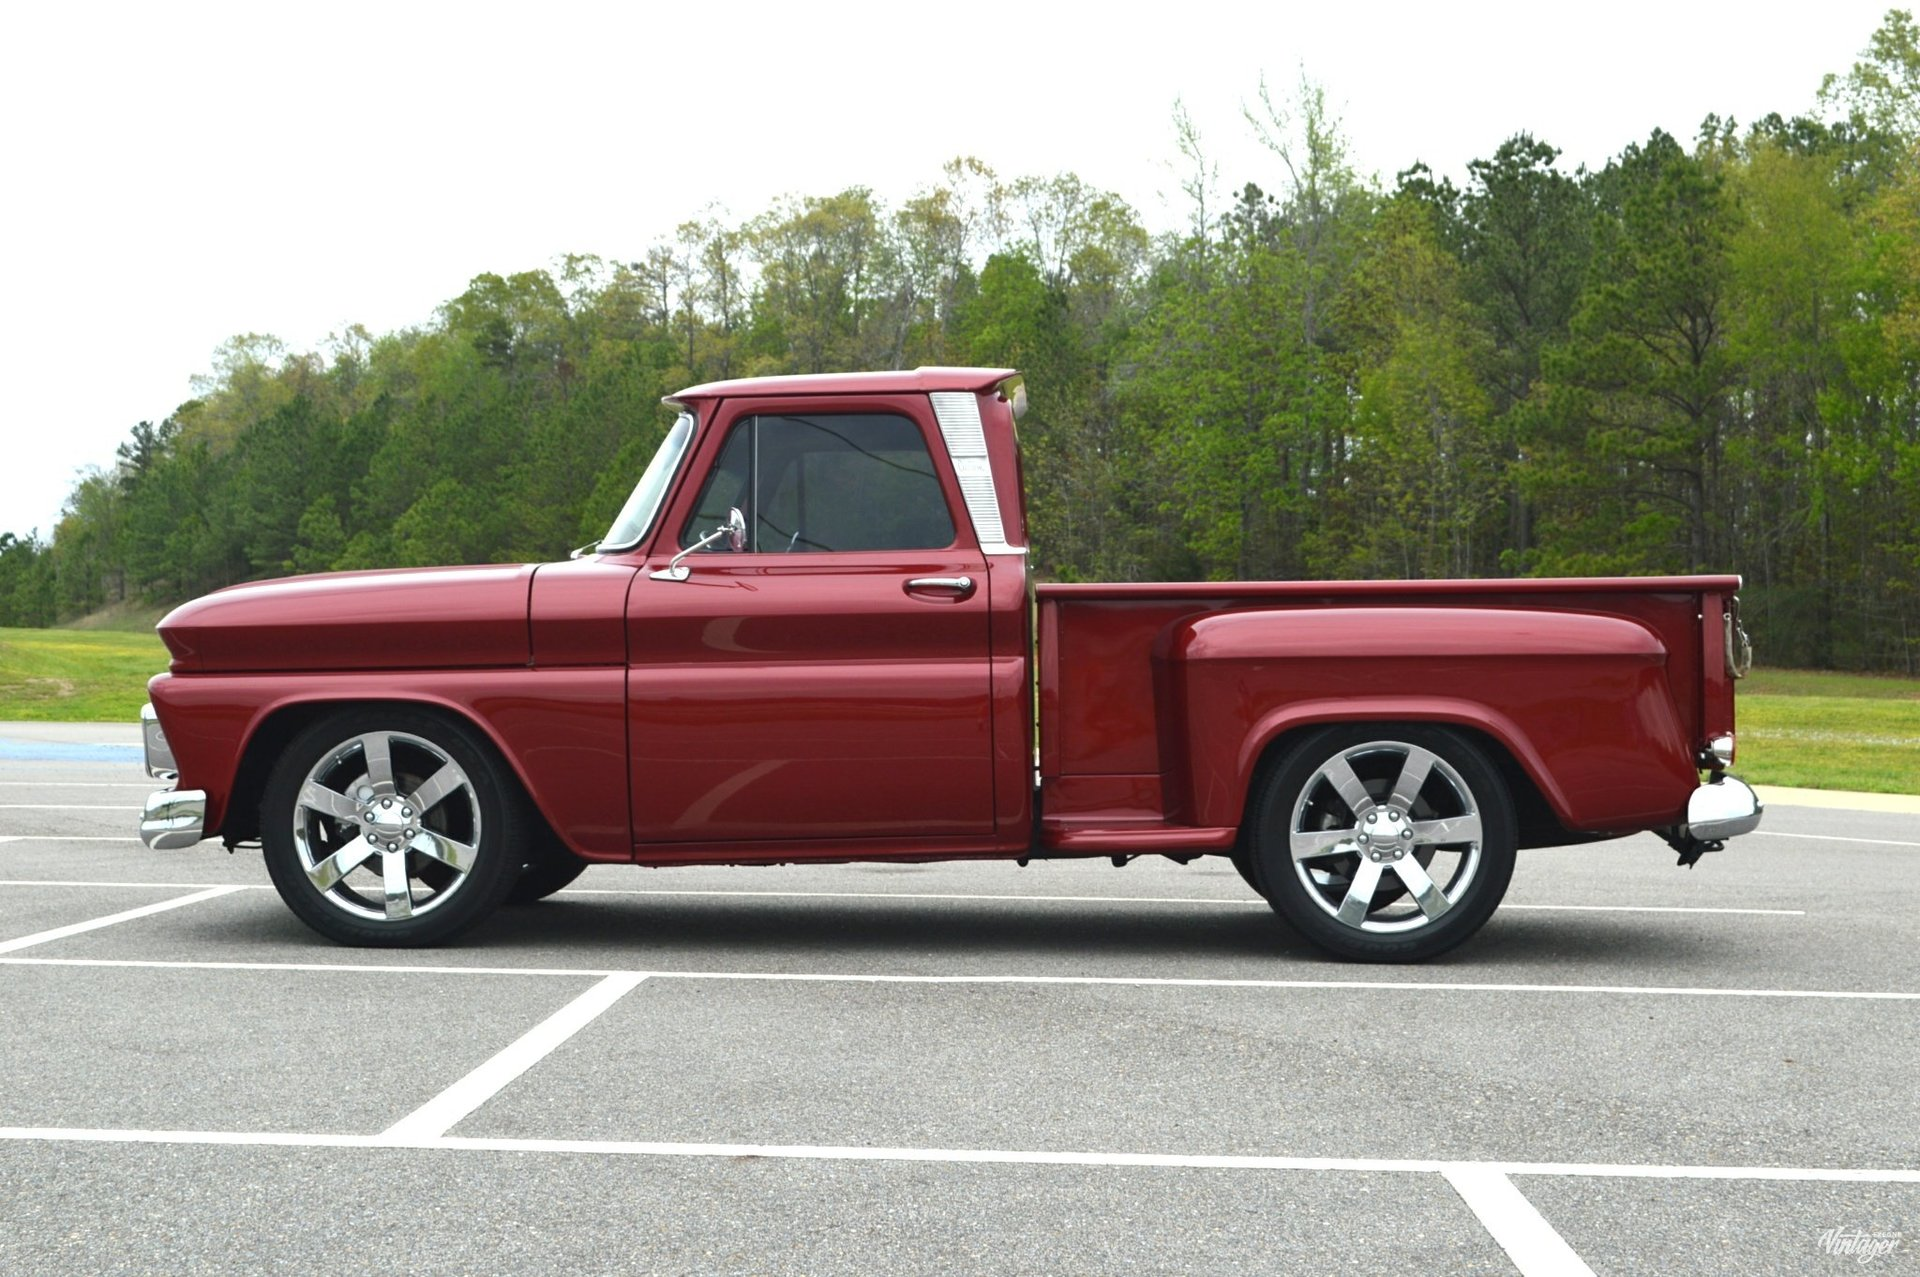 1965 chevrolet pickup for sale #92684 | mcg